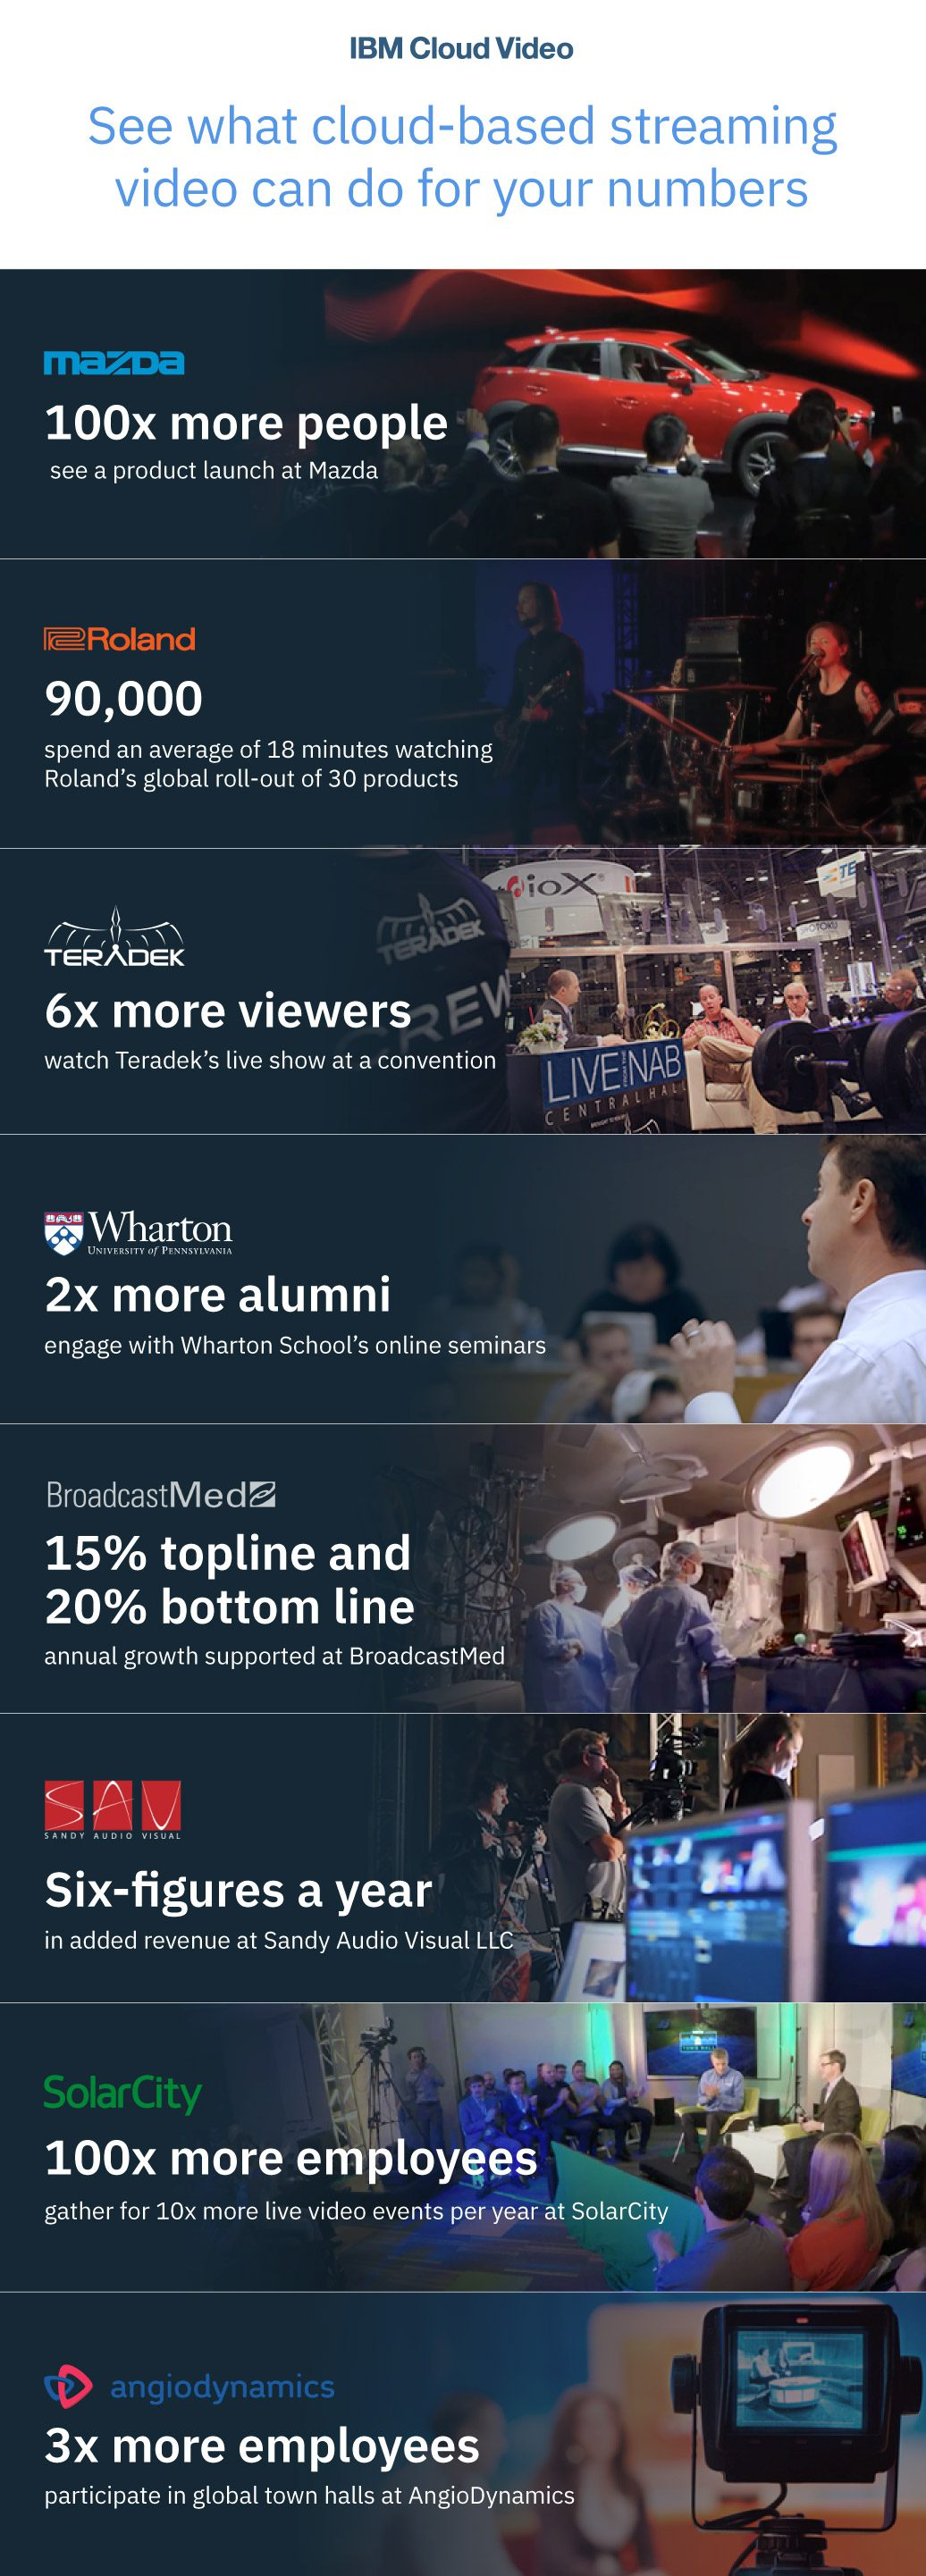 Streaming Video Success Stories Infographic